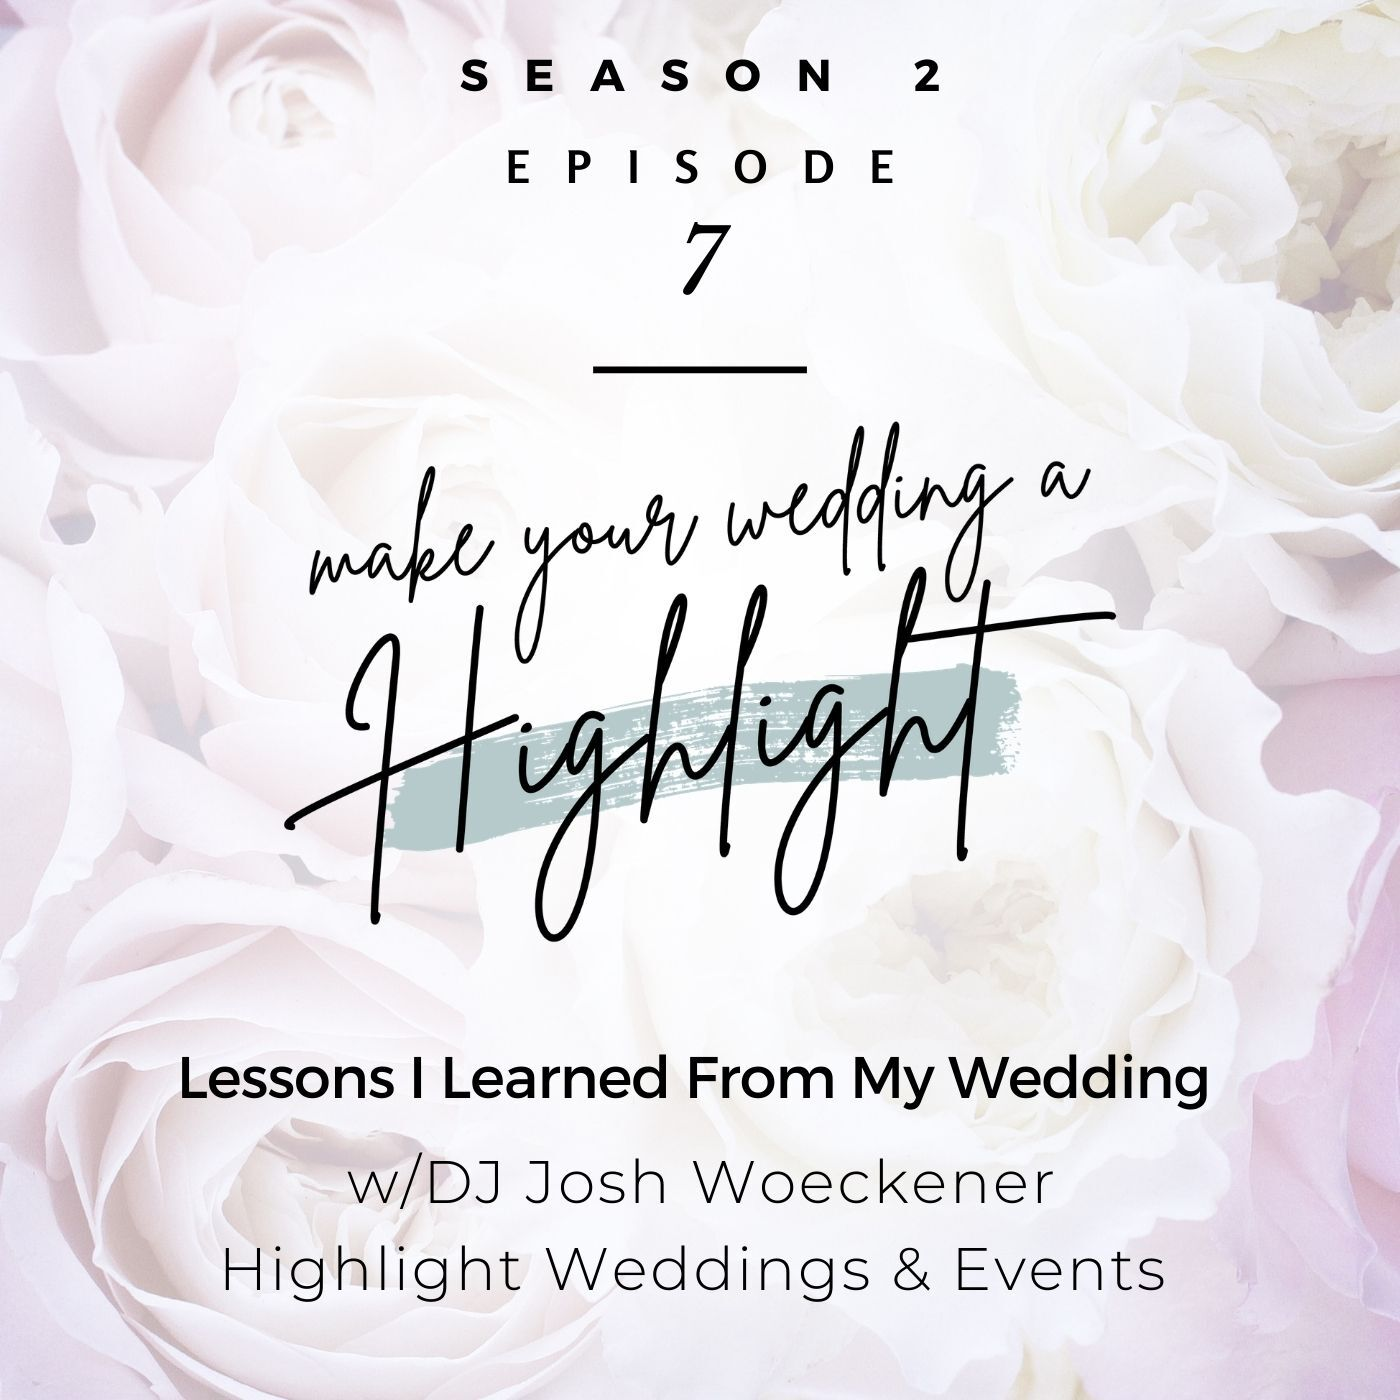 Lessons I Learned From My Wedding